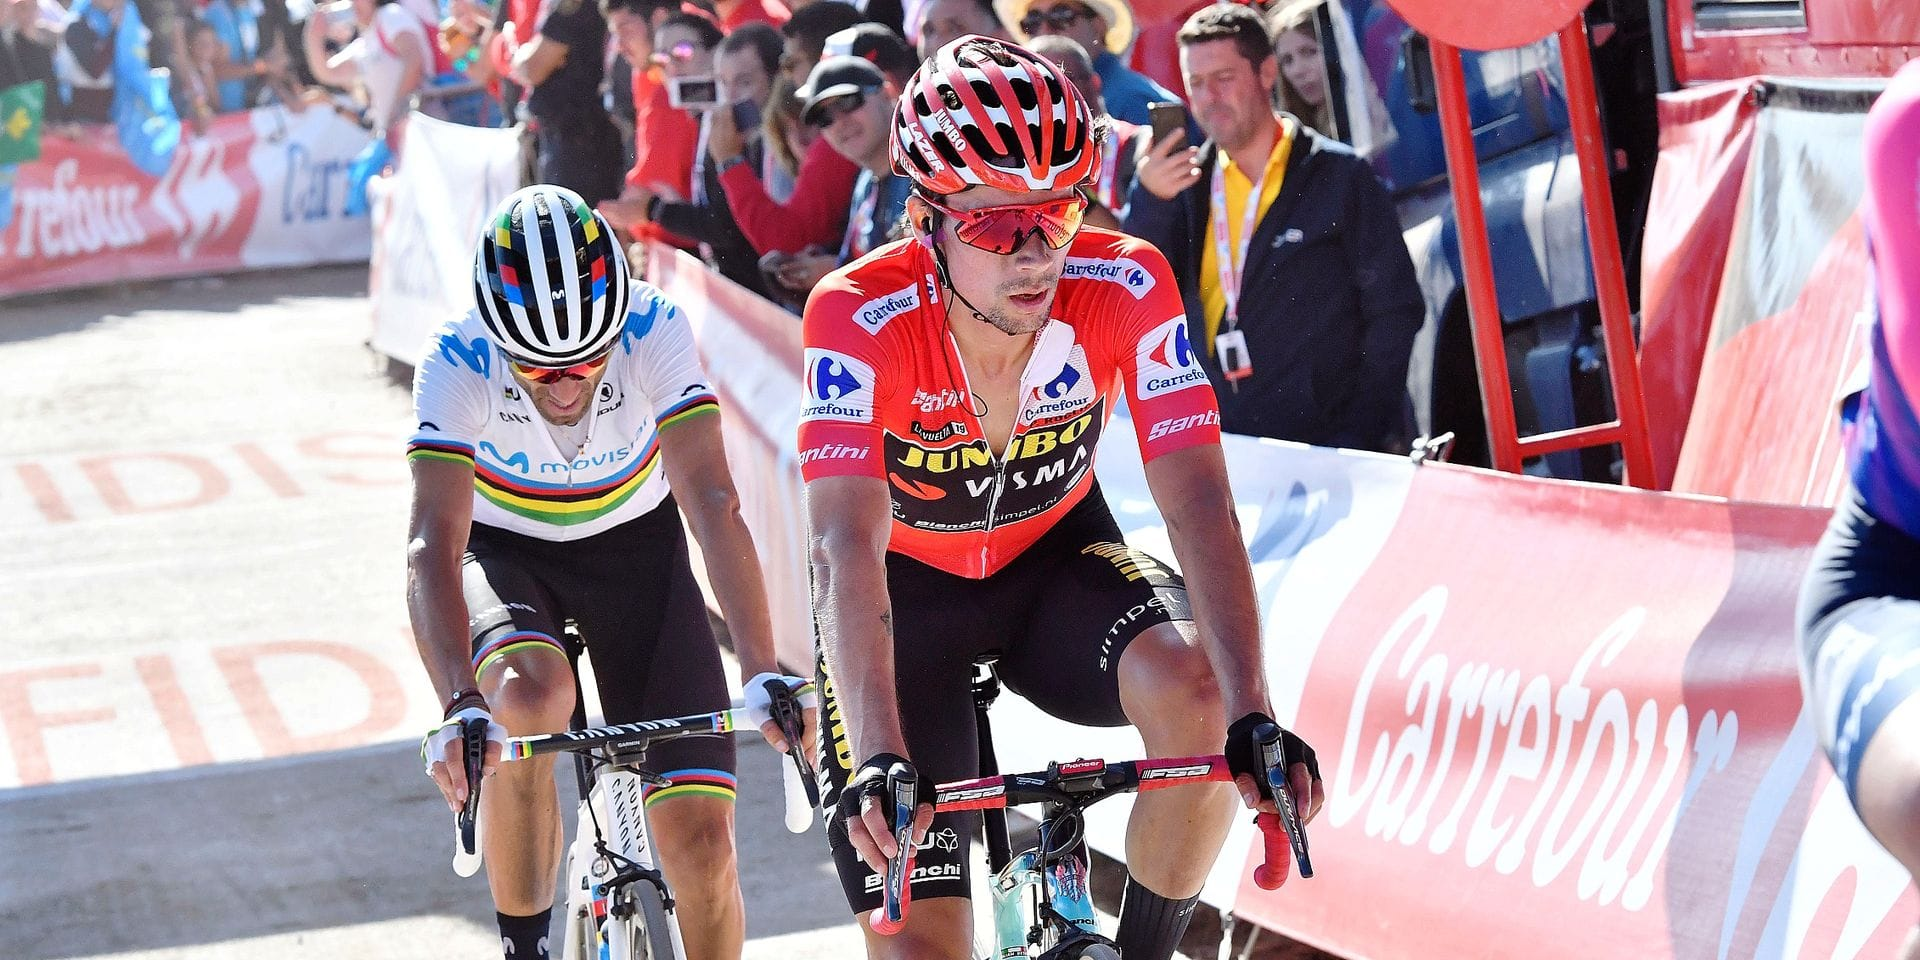 Slovenian Primoz Roglic of Team Jumbo-Visma, wearing the Maillot Rojo and Spanish Alejandro Valverde of Movistar Team pictured at the arrival of stage 15 of the 2019 edition of the 'Vuelta a Espana', Tour of Spain cycling race, from Tineo to Santuario del Acebo (154,4 km), Sunday 08 September 2019. BELGA PHOTO YUZURU SUNADA - FRANCE OUT